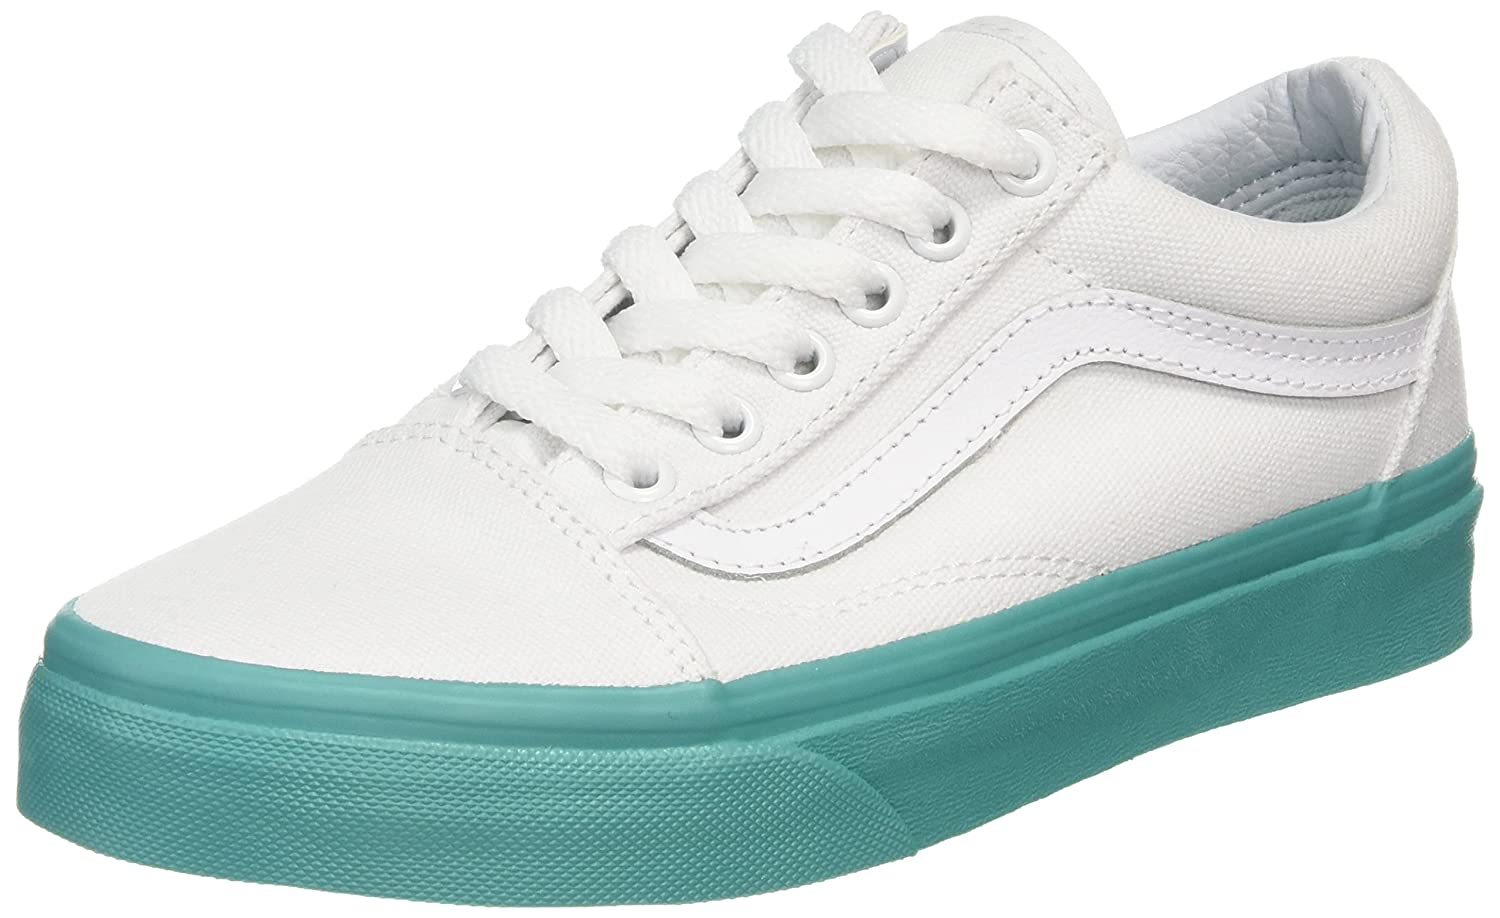 TALLA 37 EU. Vans Old Skool, Zapatillas Unisex Adulto